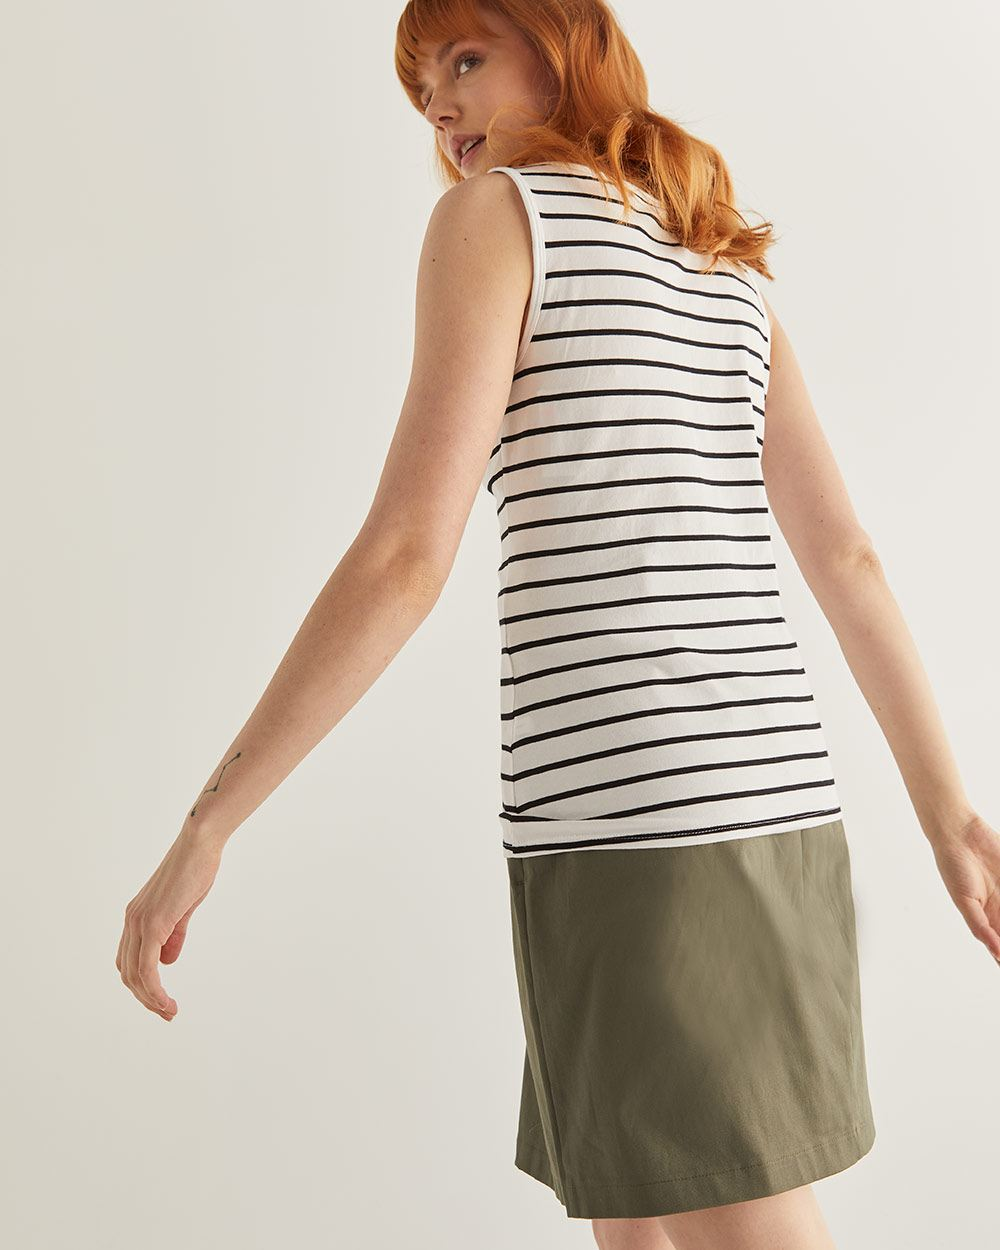 R-Essentials Striped Tank Top